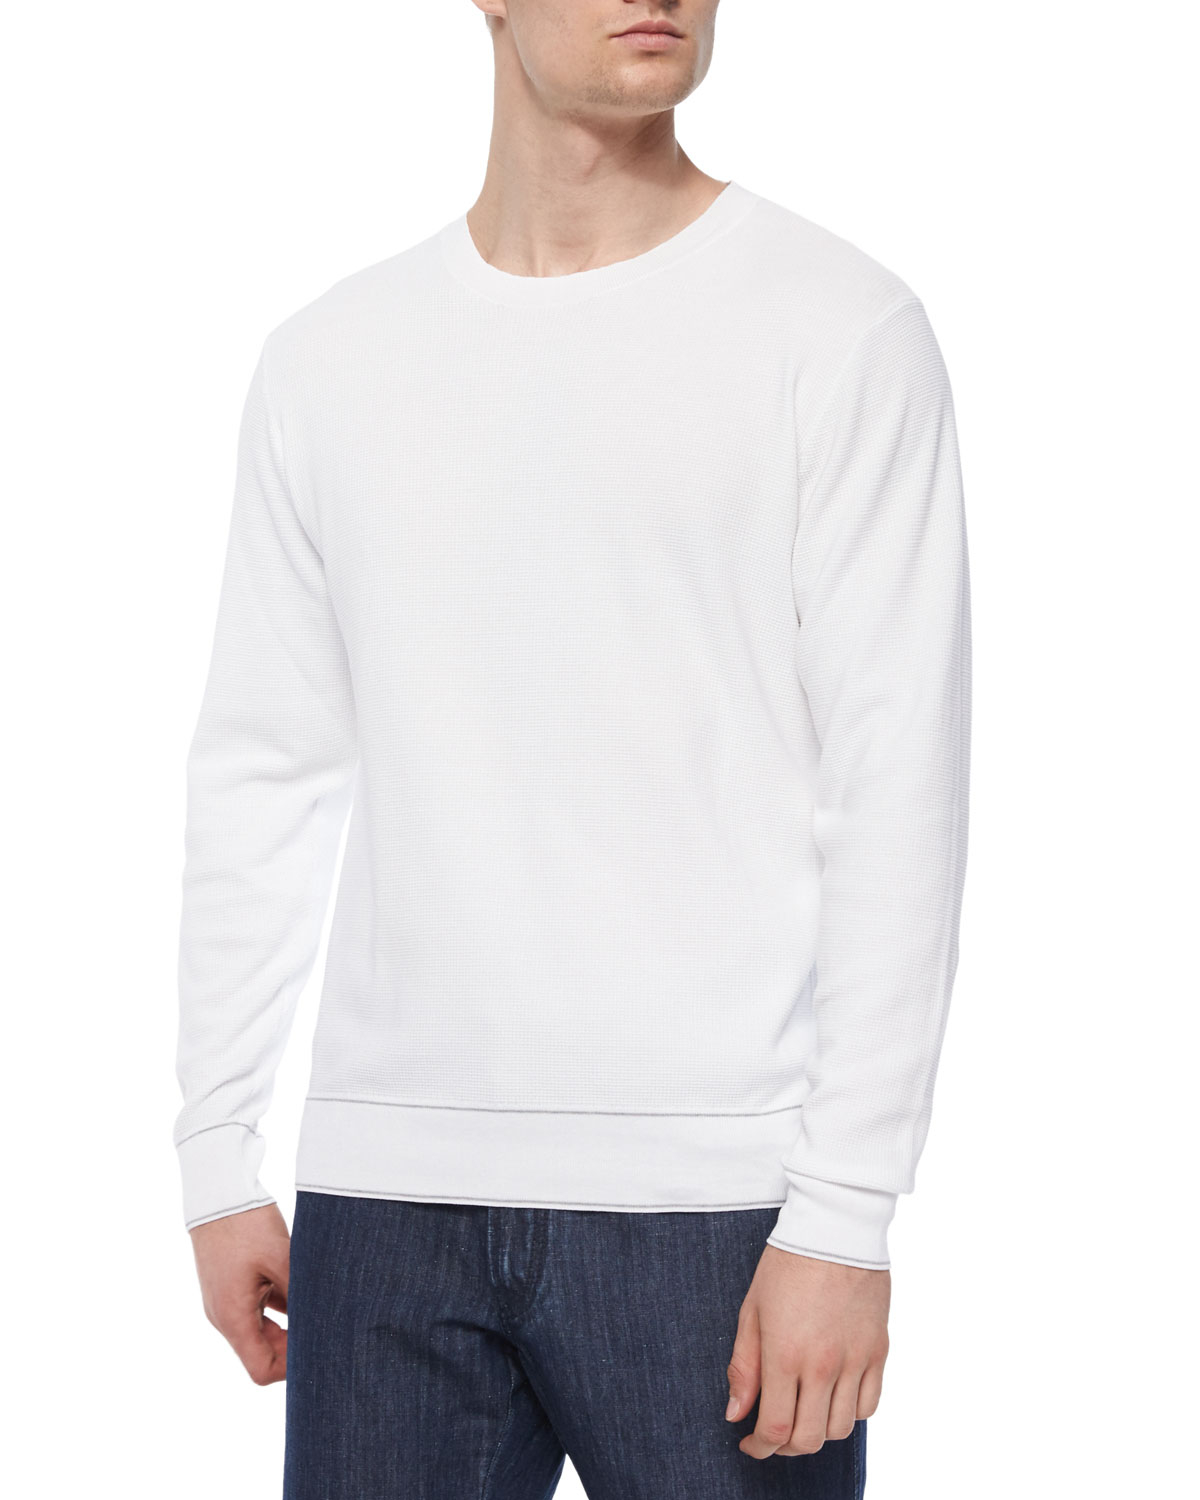 2bfc7ef7fc45 Brioni Small Waffle-knit Crewneck Sweater in White for Men - Lyst